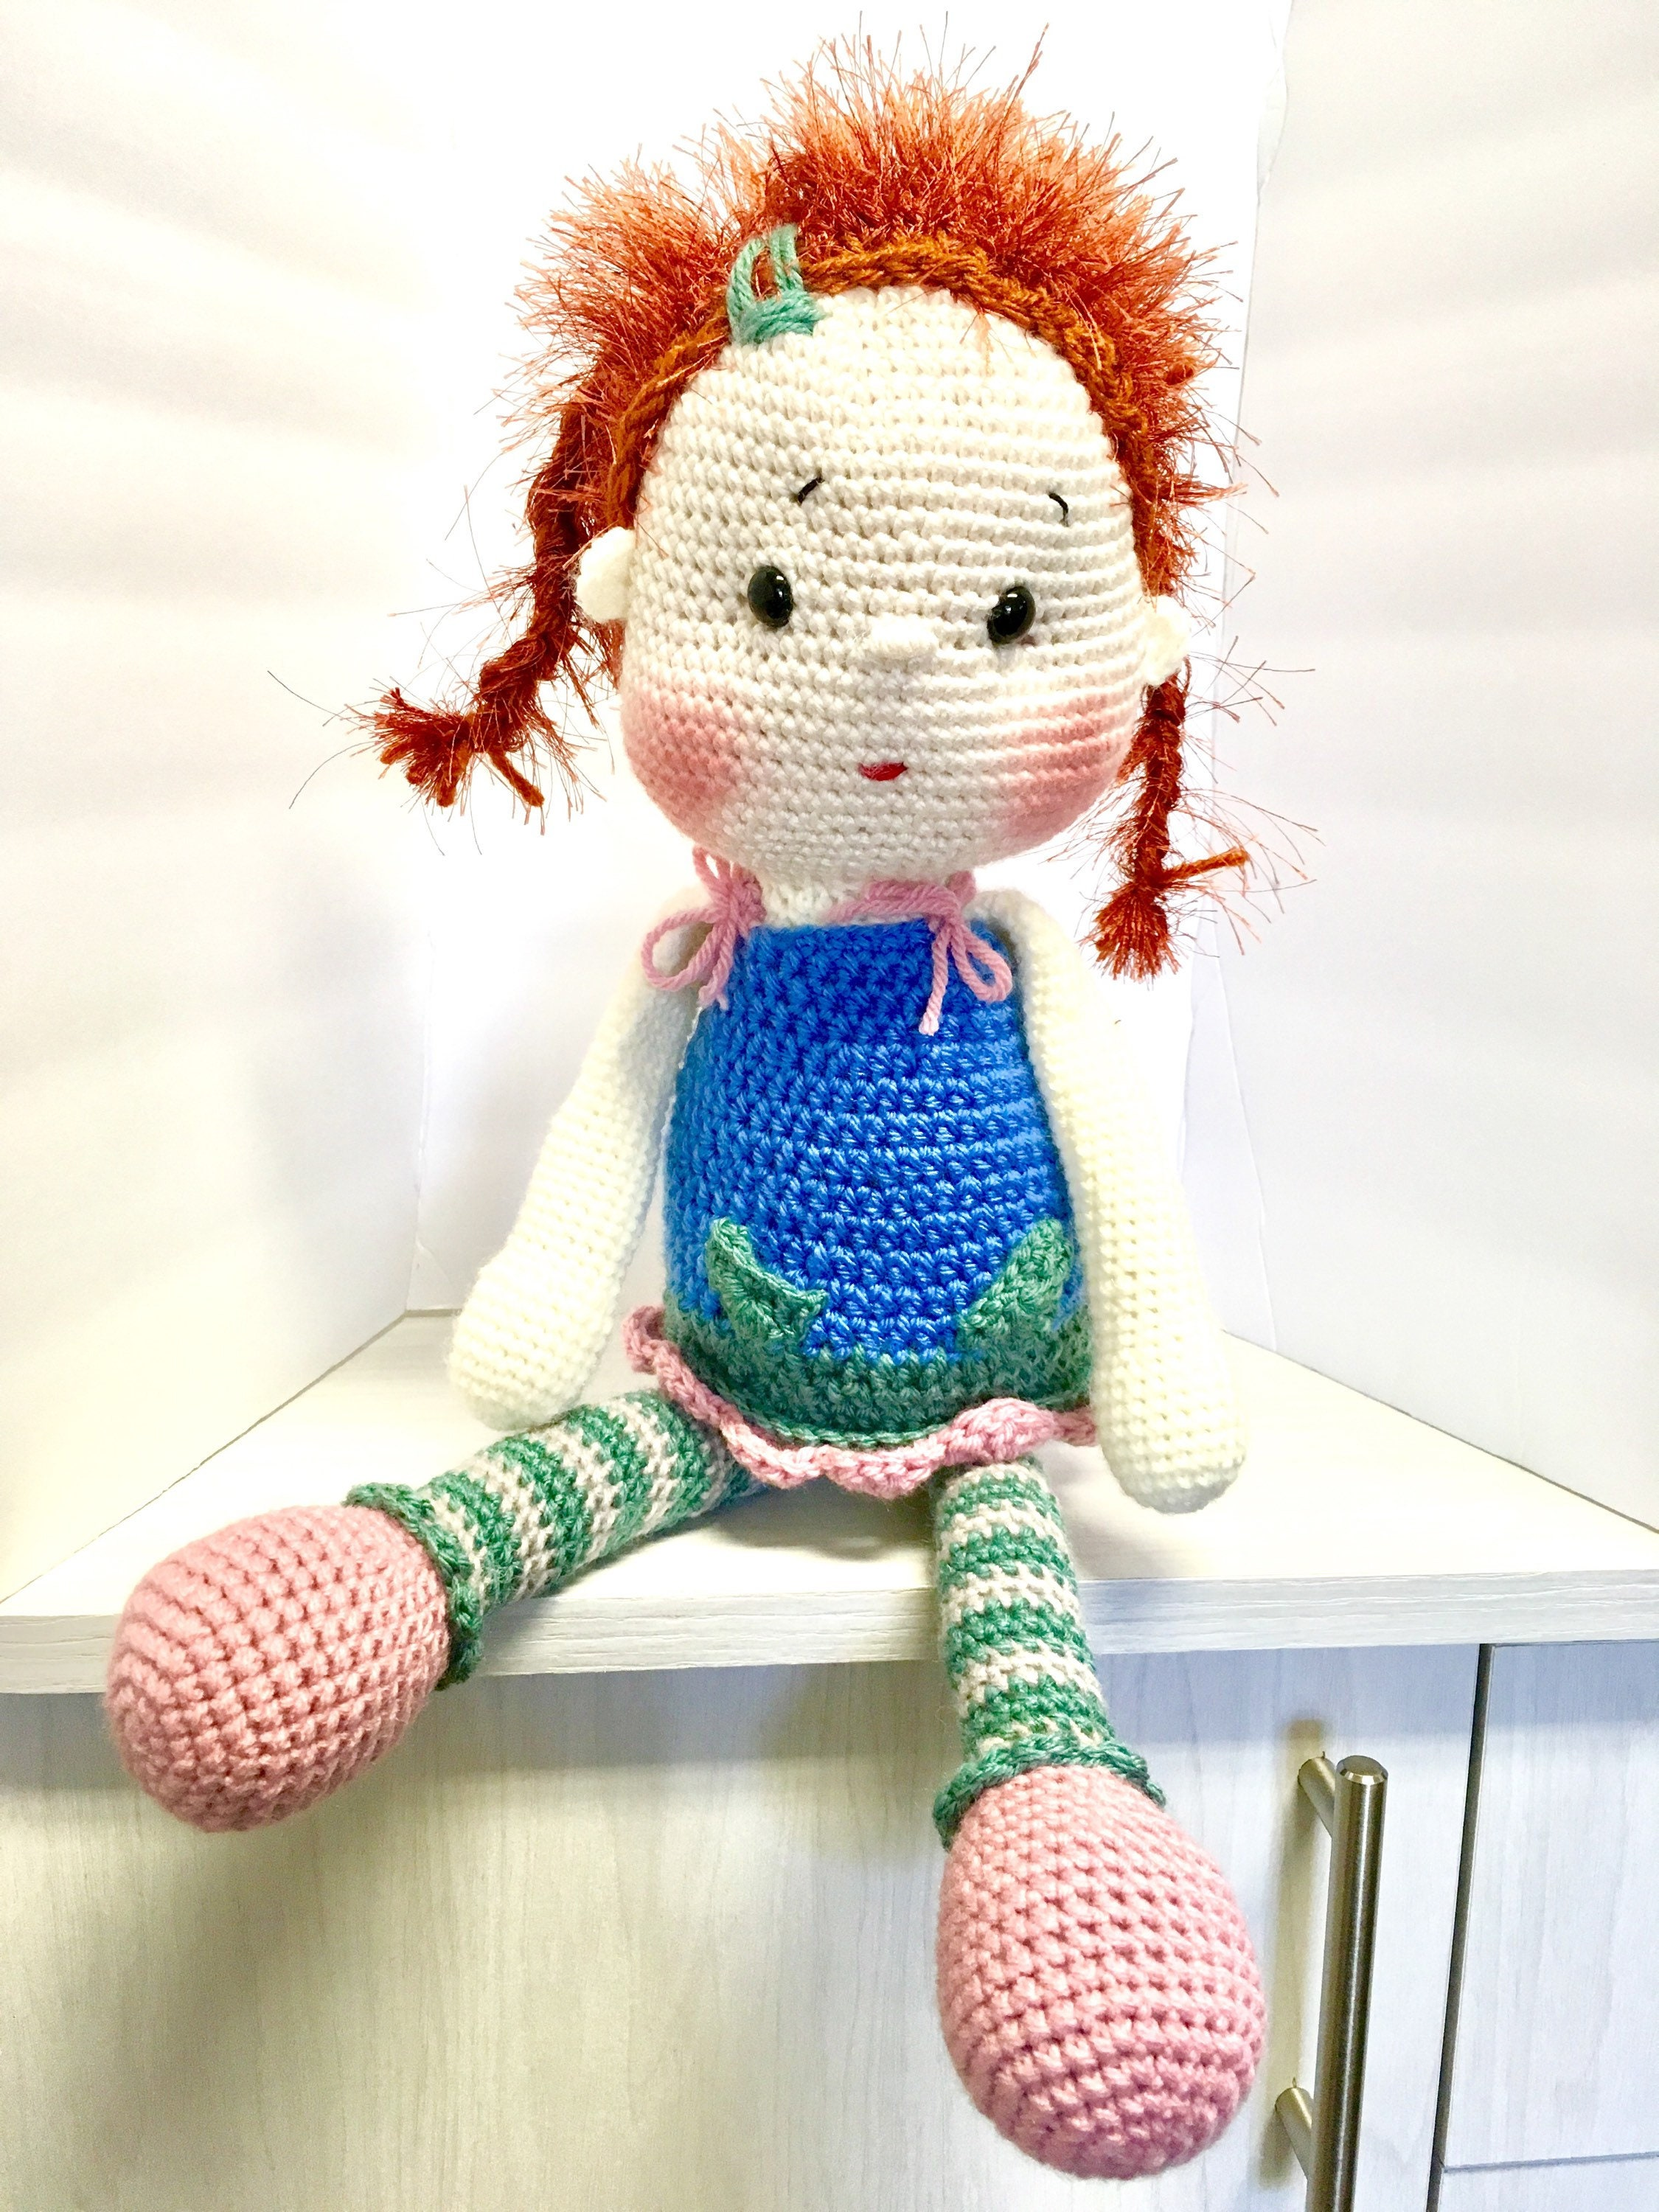 How to Attach Hair to a Crochet Doll - thefriendlyredfox.com | 3000x2250